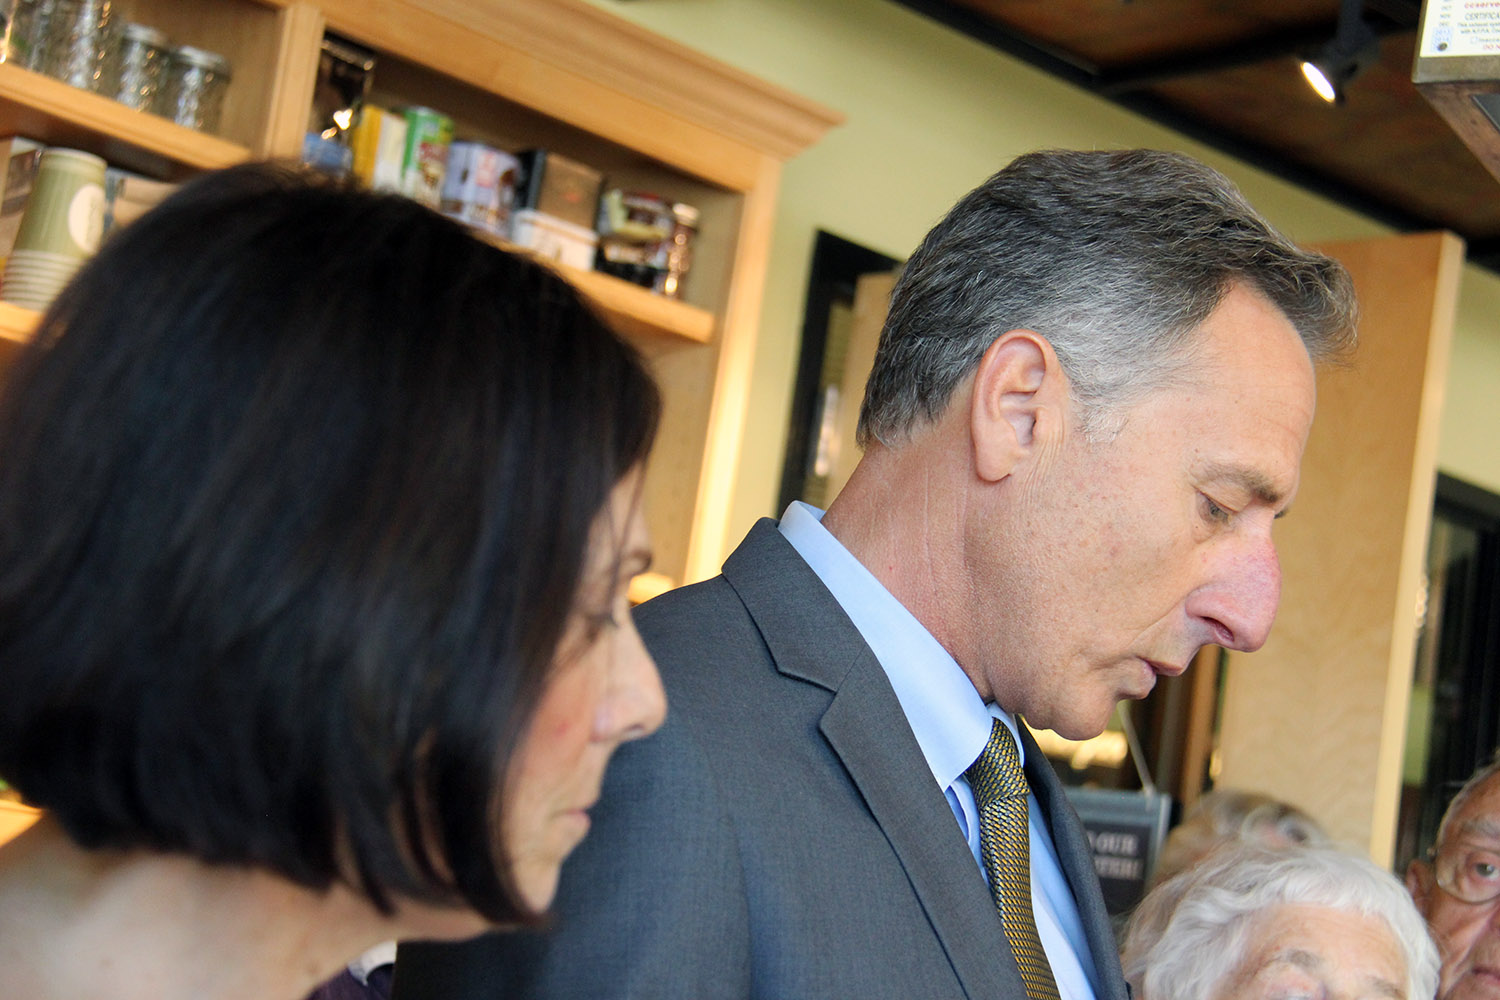 At Emotional Ceremony, Shumlin Signs End-Of-Life Bill